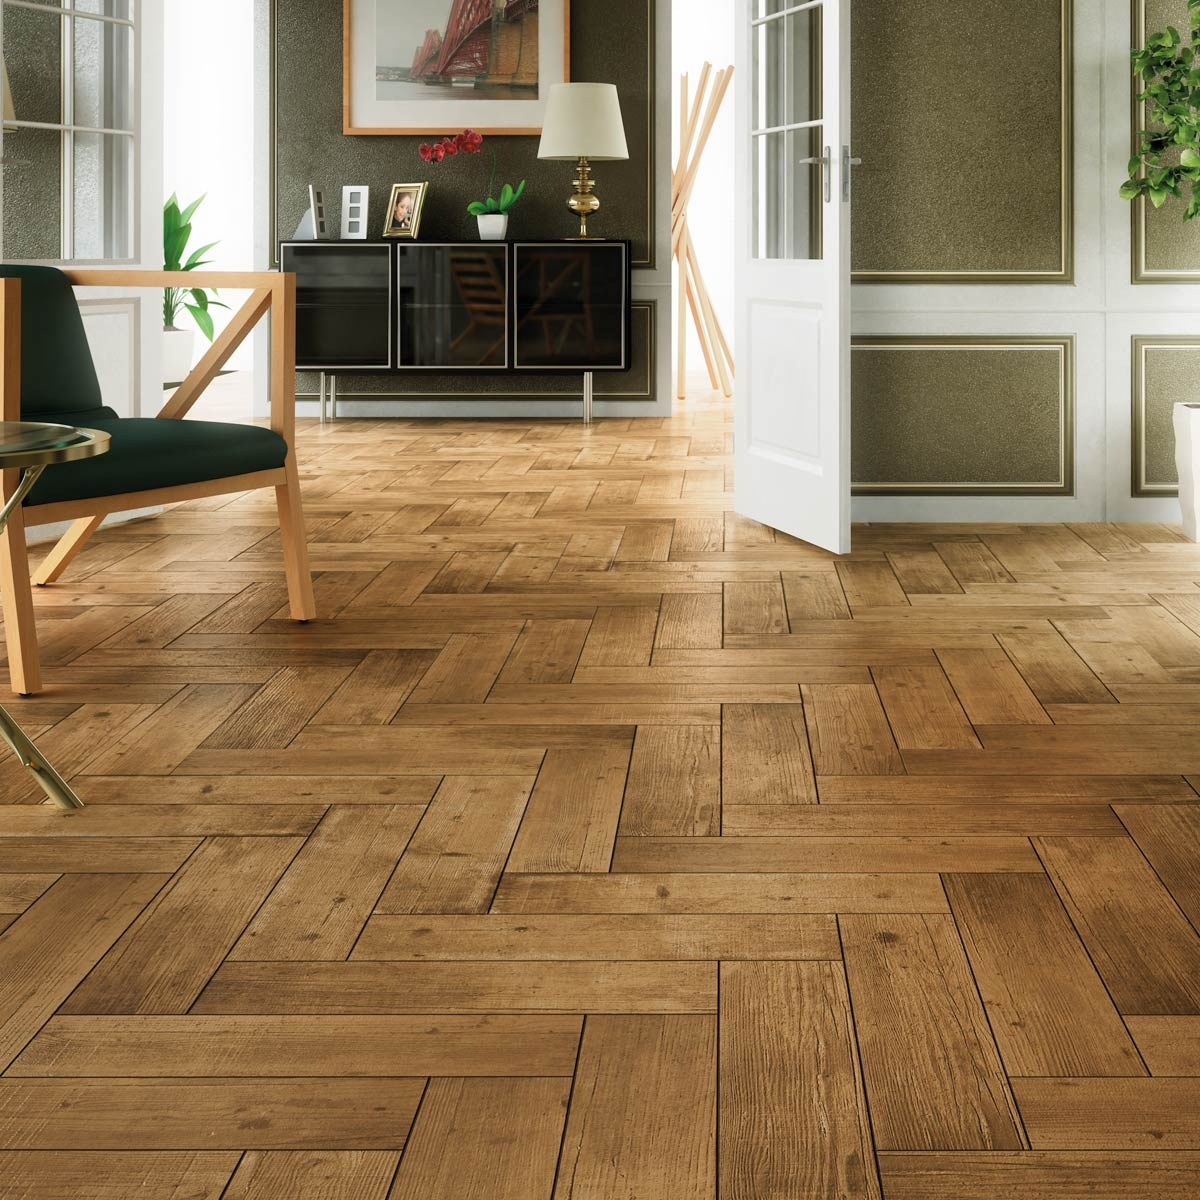 Herringbone Wood Effect Floor Tilesarteak castano wood effect tiles porcelain superstore